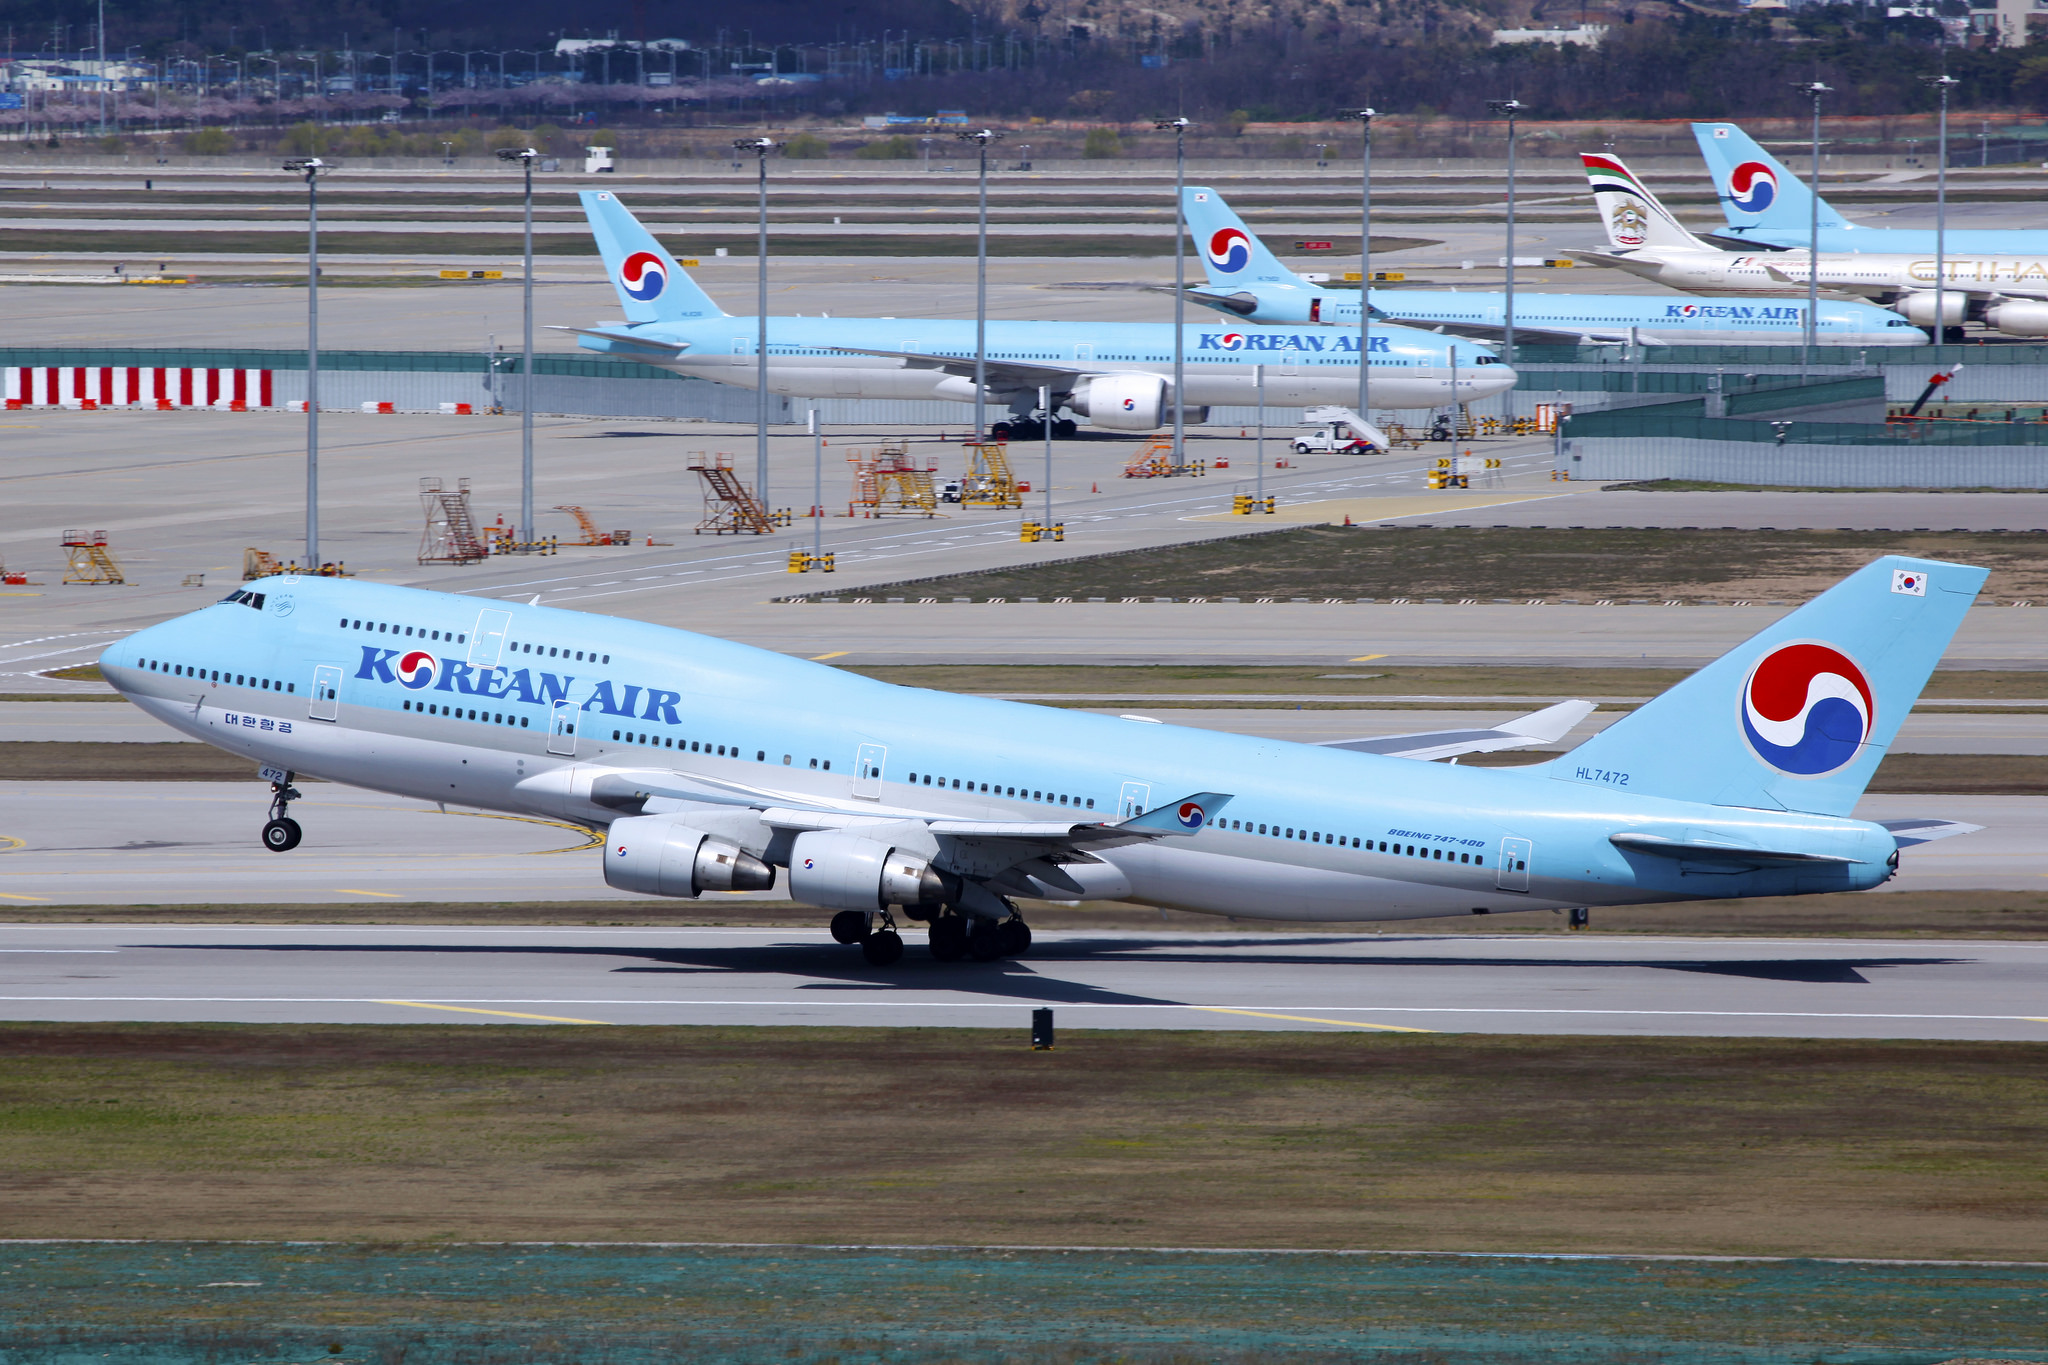 Korean Air planes at the Incheon International Airport.